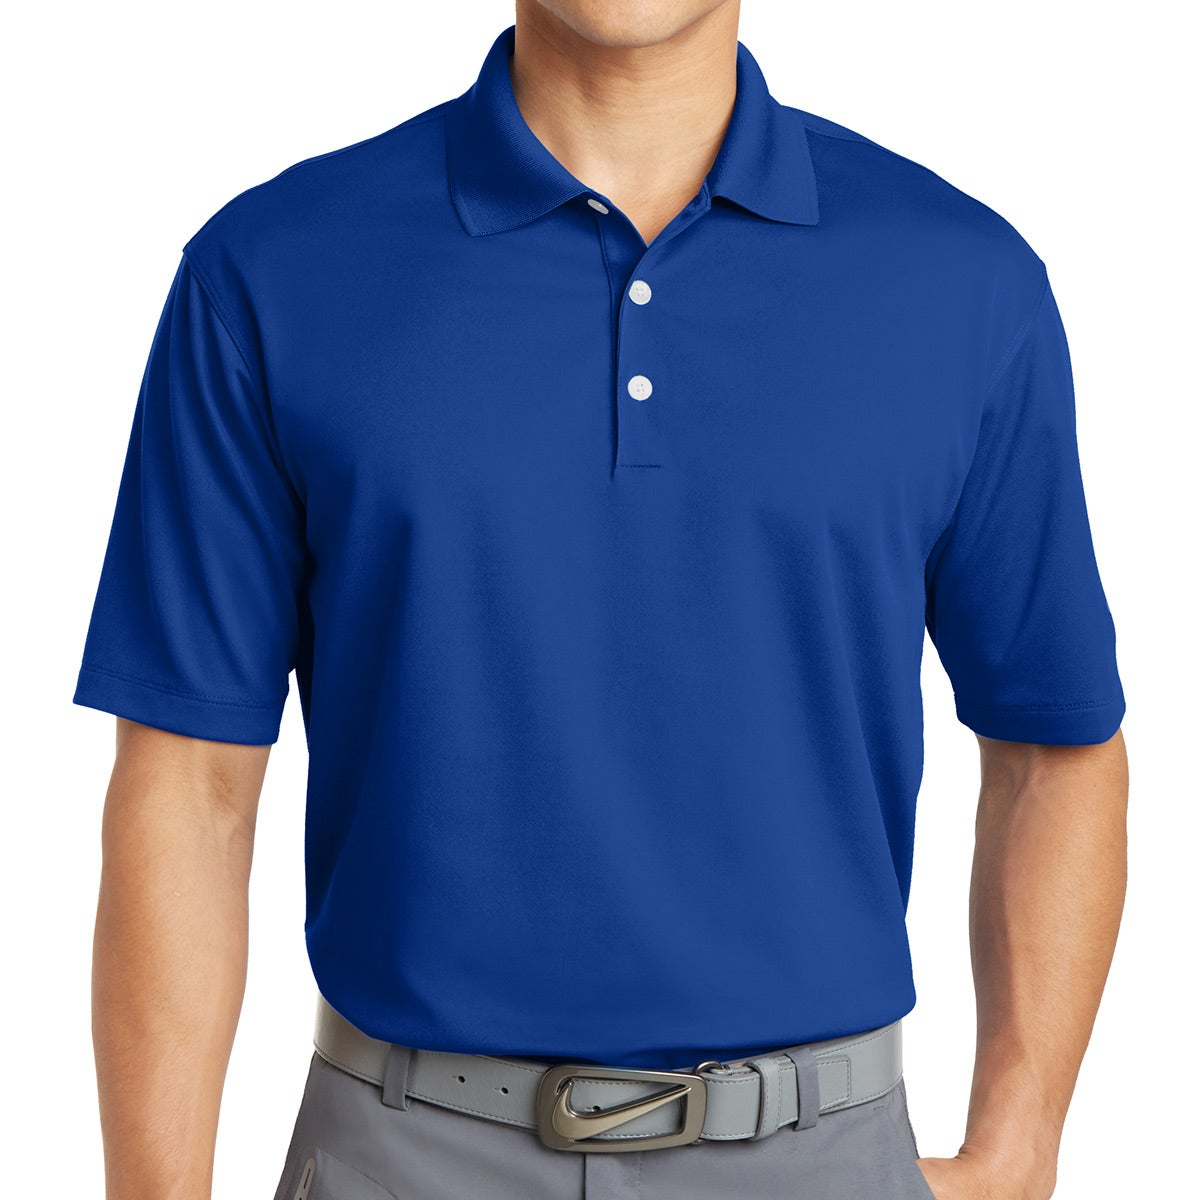 Promotional Nike Golf Dri Fit Micro Pique Polo Shirts With